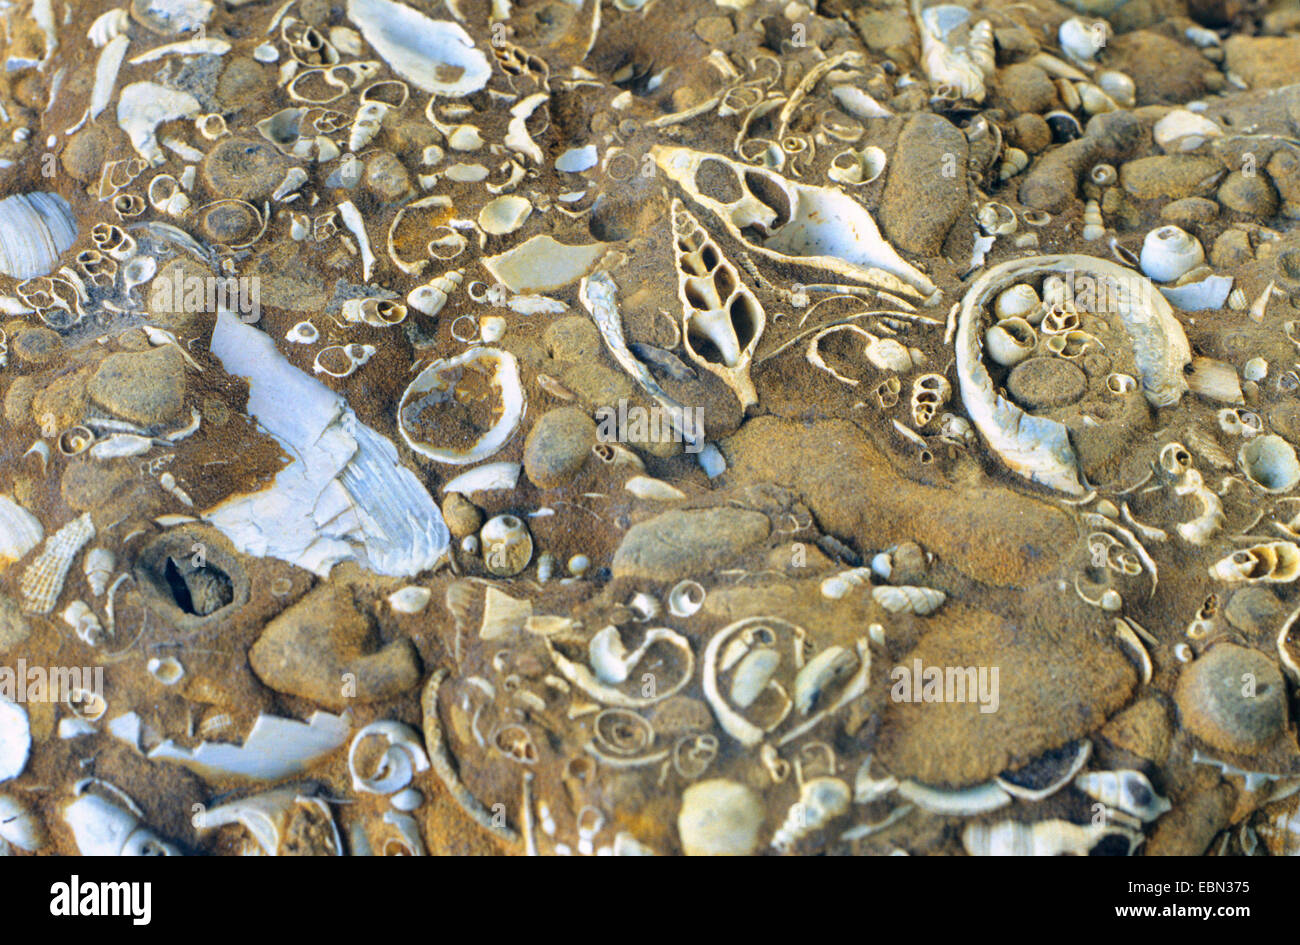 shells of molluscs from the Early Miocene, Germany, Schleswig-Holstein - Stock Image